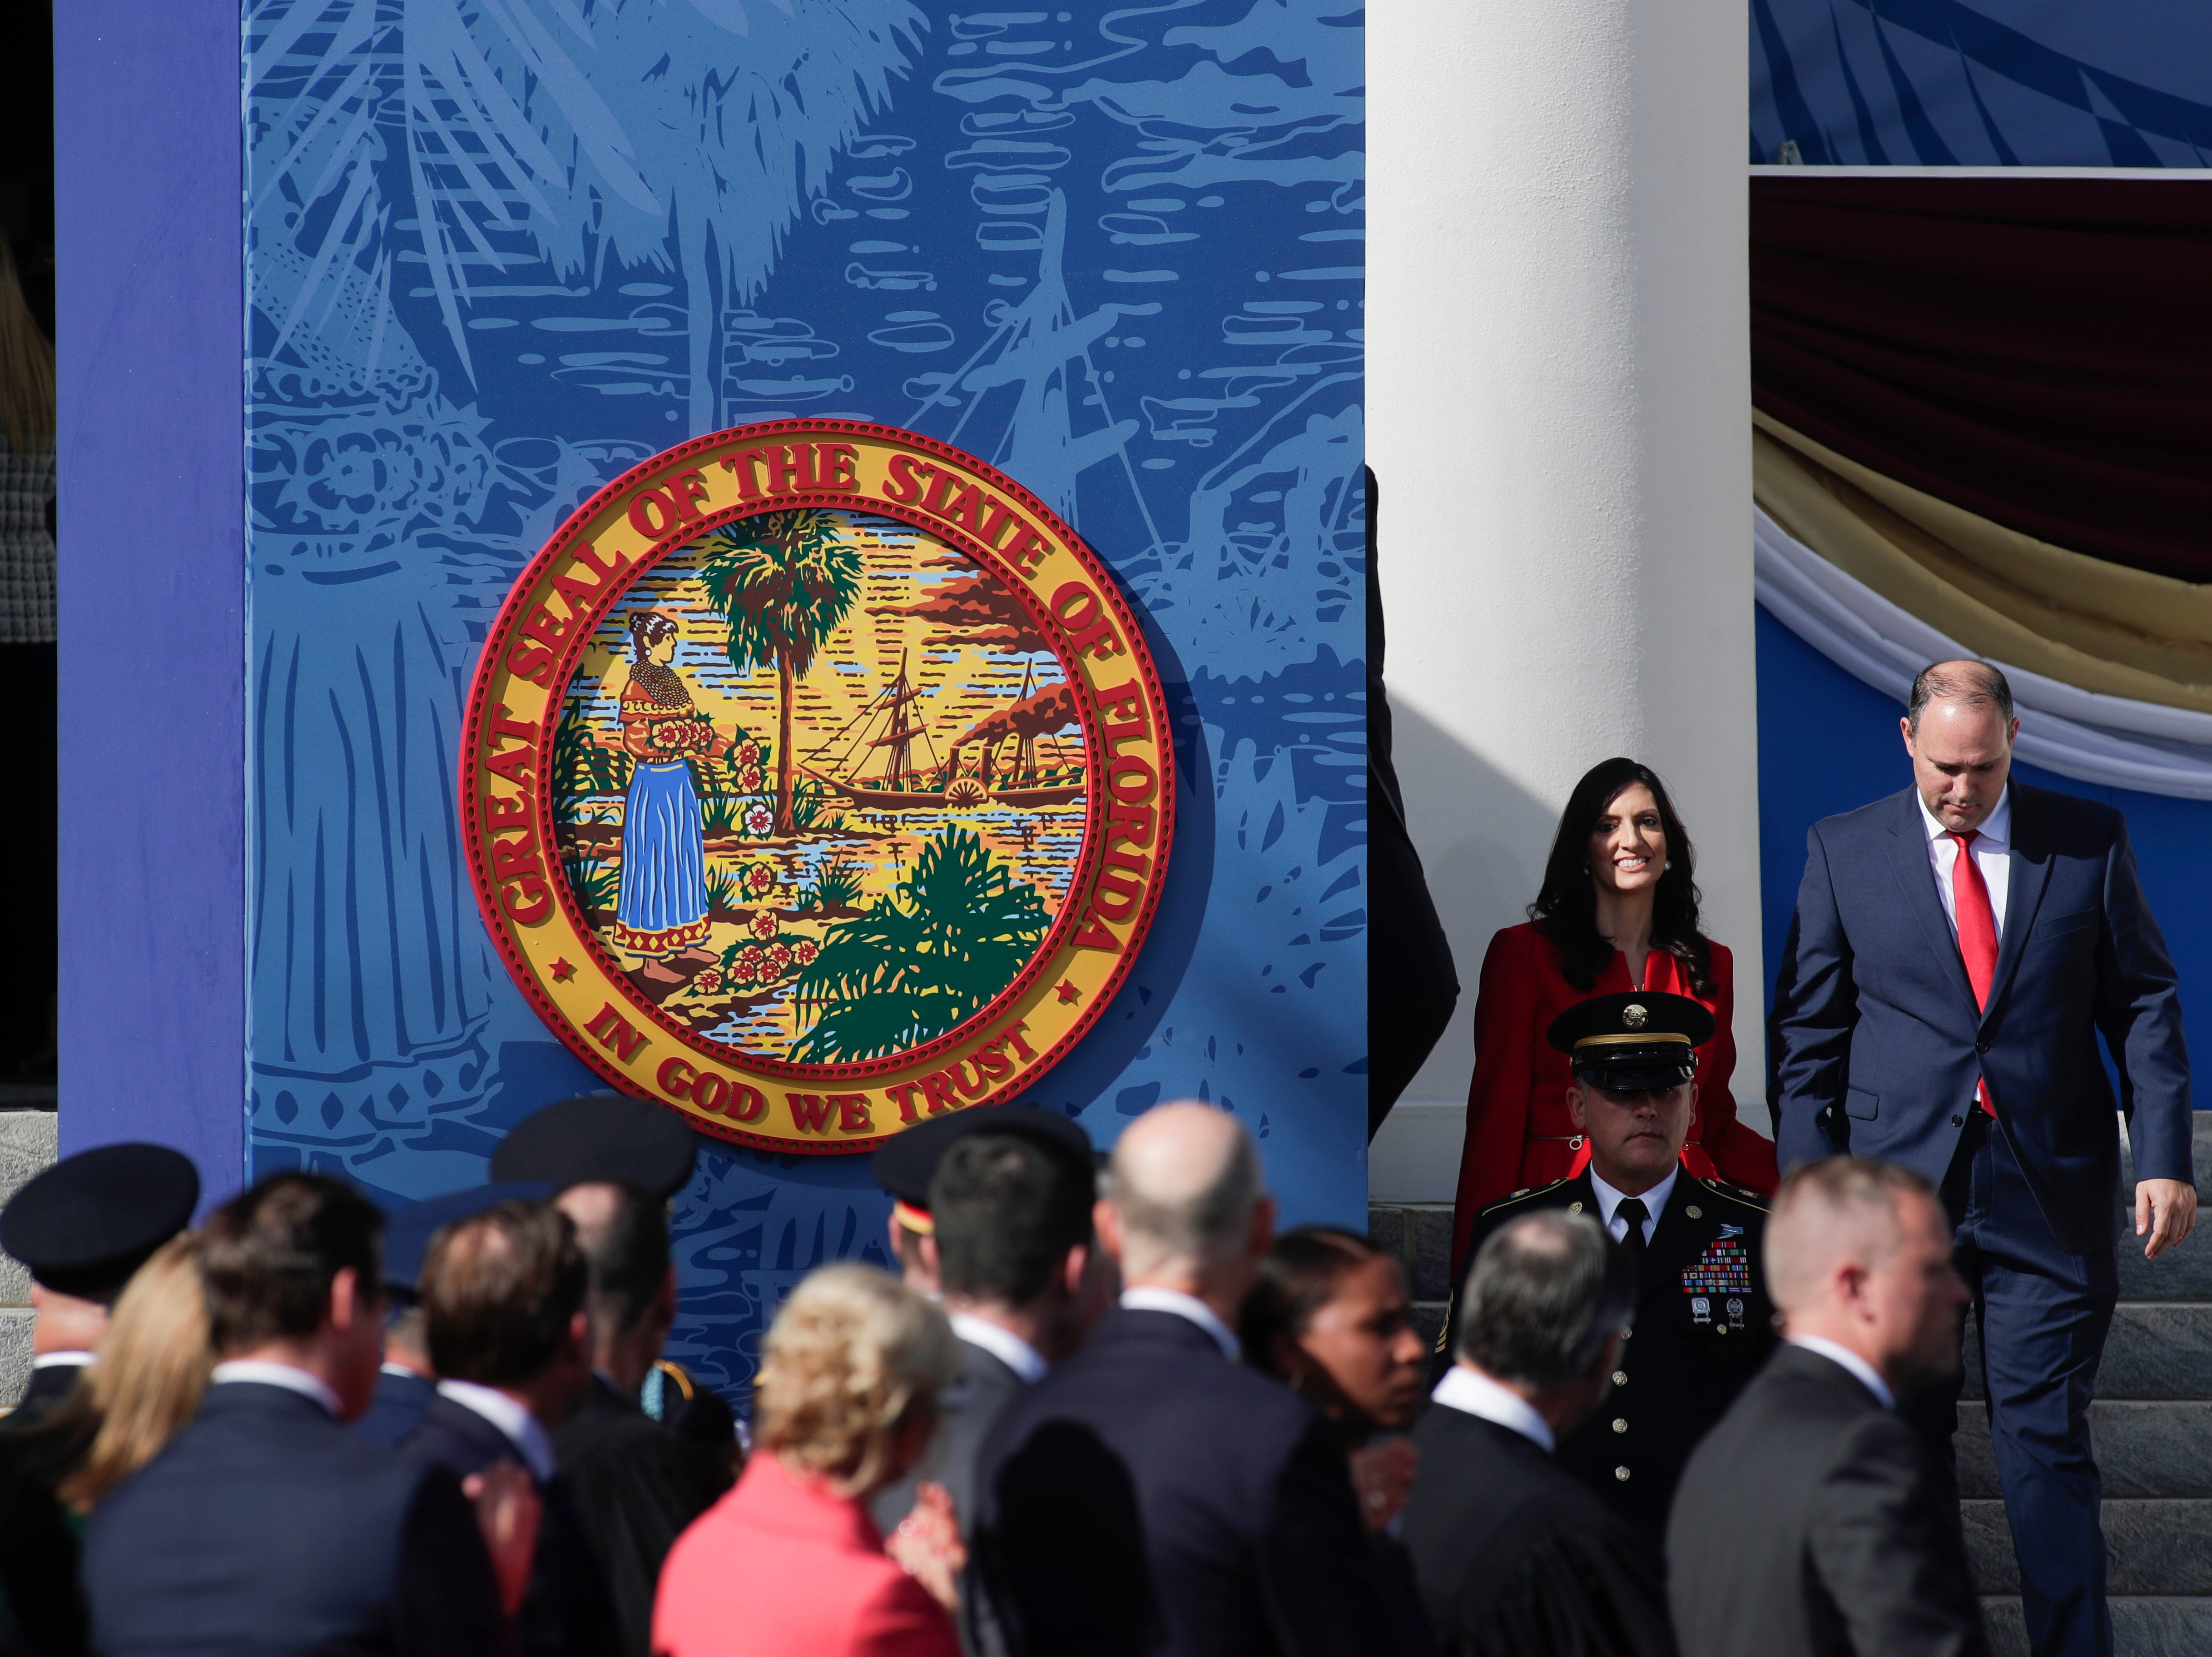 Lt. Gov. Jeanette Nu–ez is escorted to her seat by her husband Adrian Nu–ez during the 2019 inauguration ceremony on the steps of the Historic Capitol Building in Tallahassee Tuesday, Jan. 8, 2019.